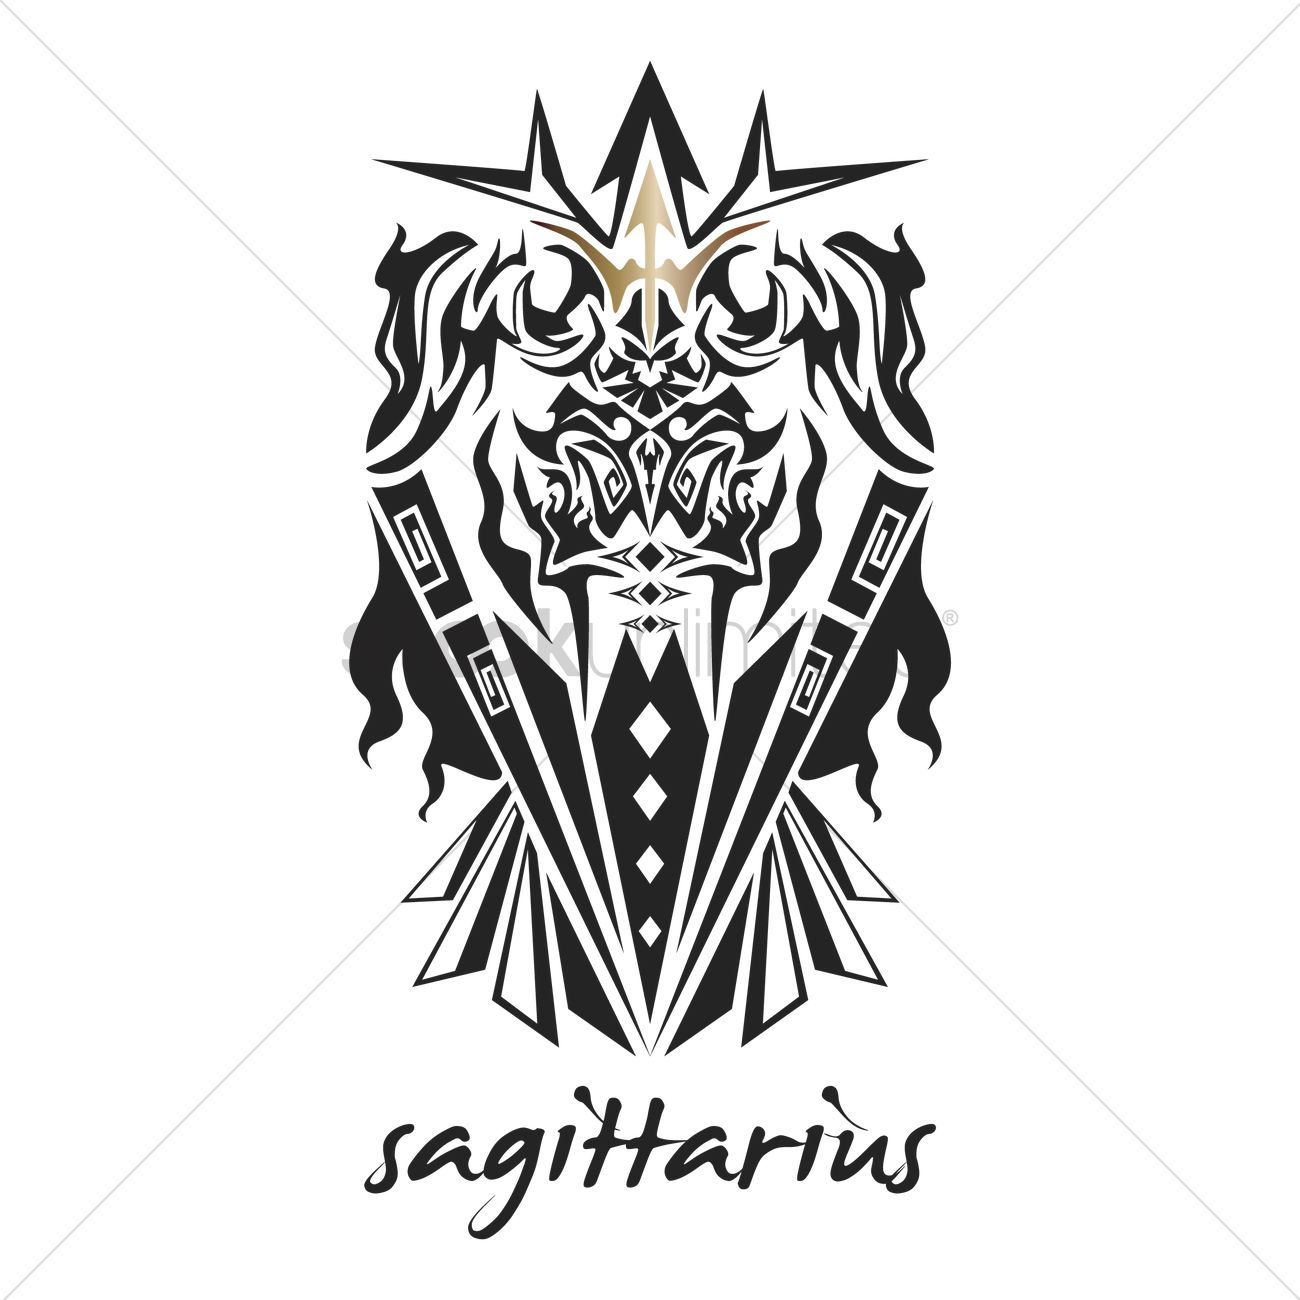 Sagittarius Tattoo Horoscope Design Vector Image 1969169